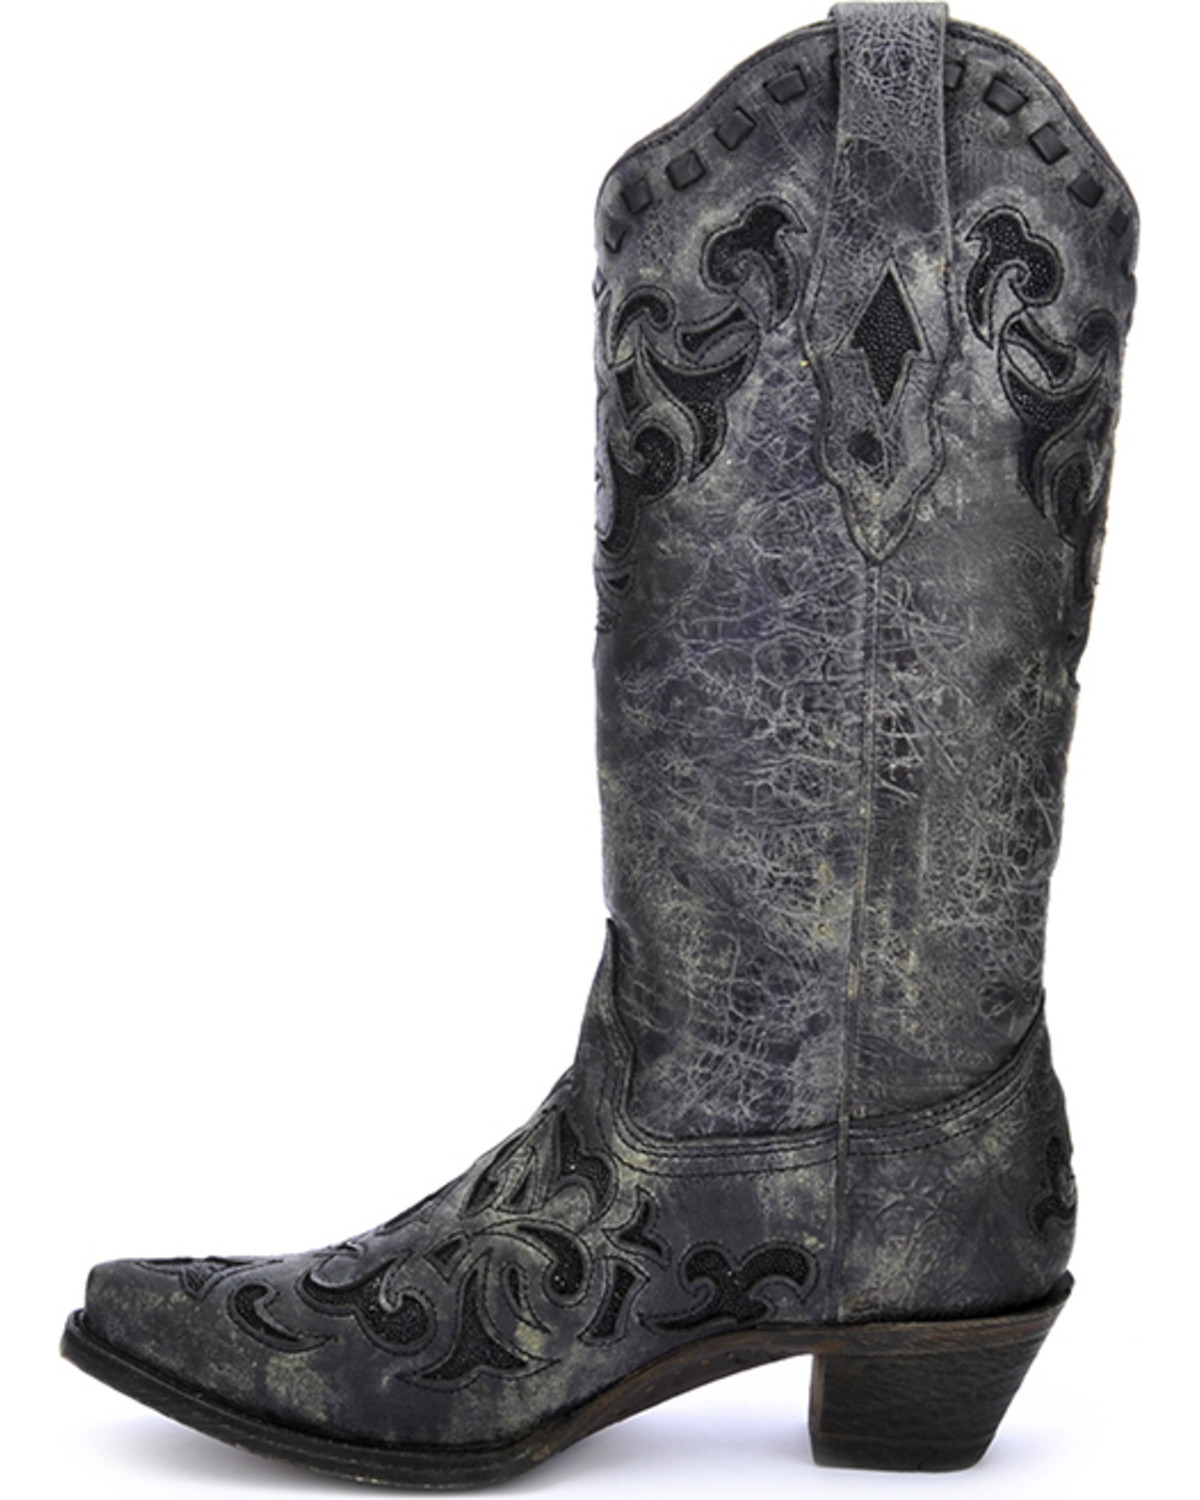 Corral Women's Stingray Inlay Cowgirl Boots - Snip Toe - Country ...